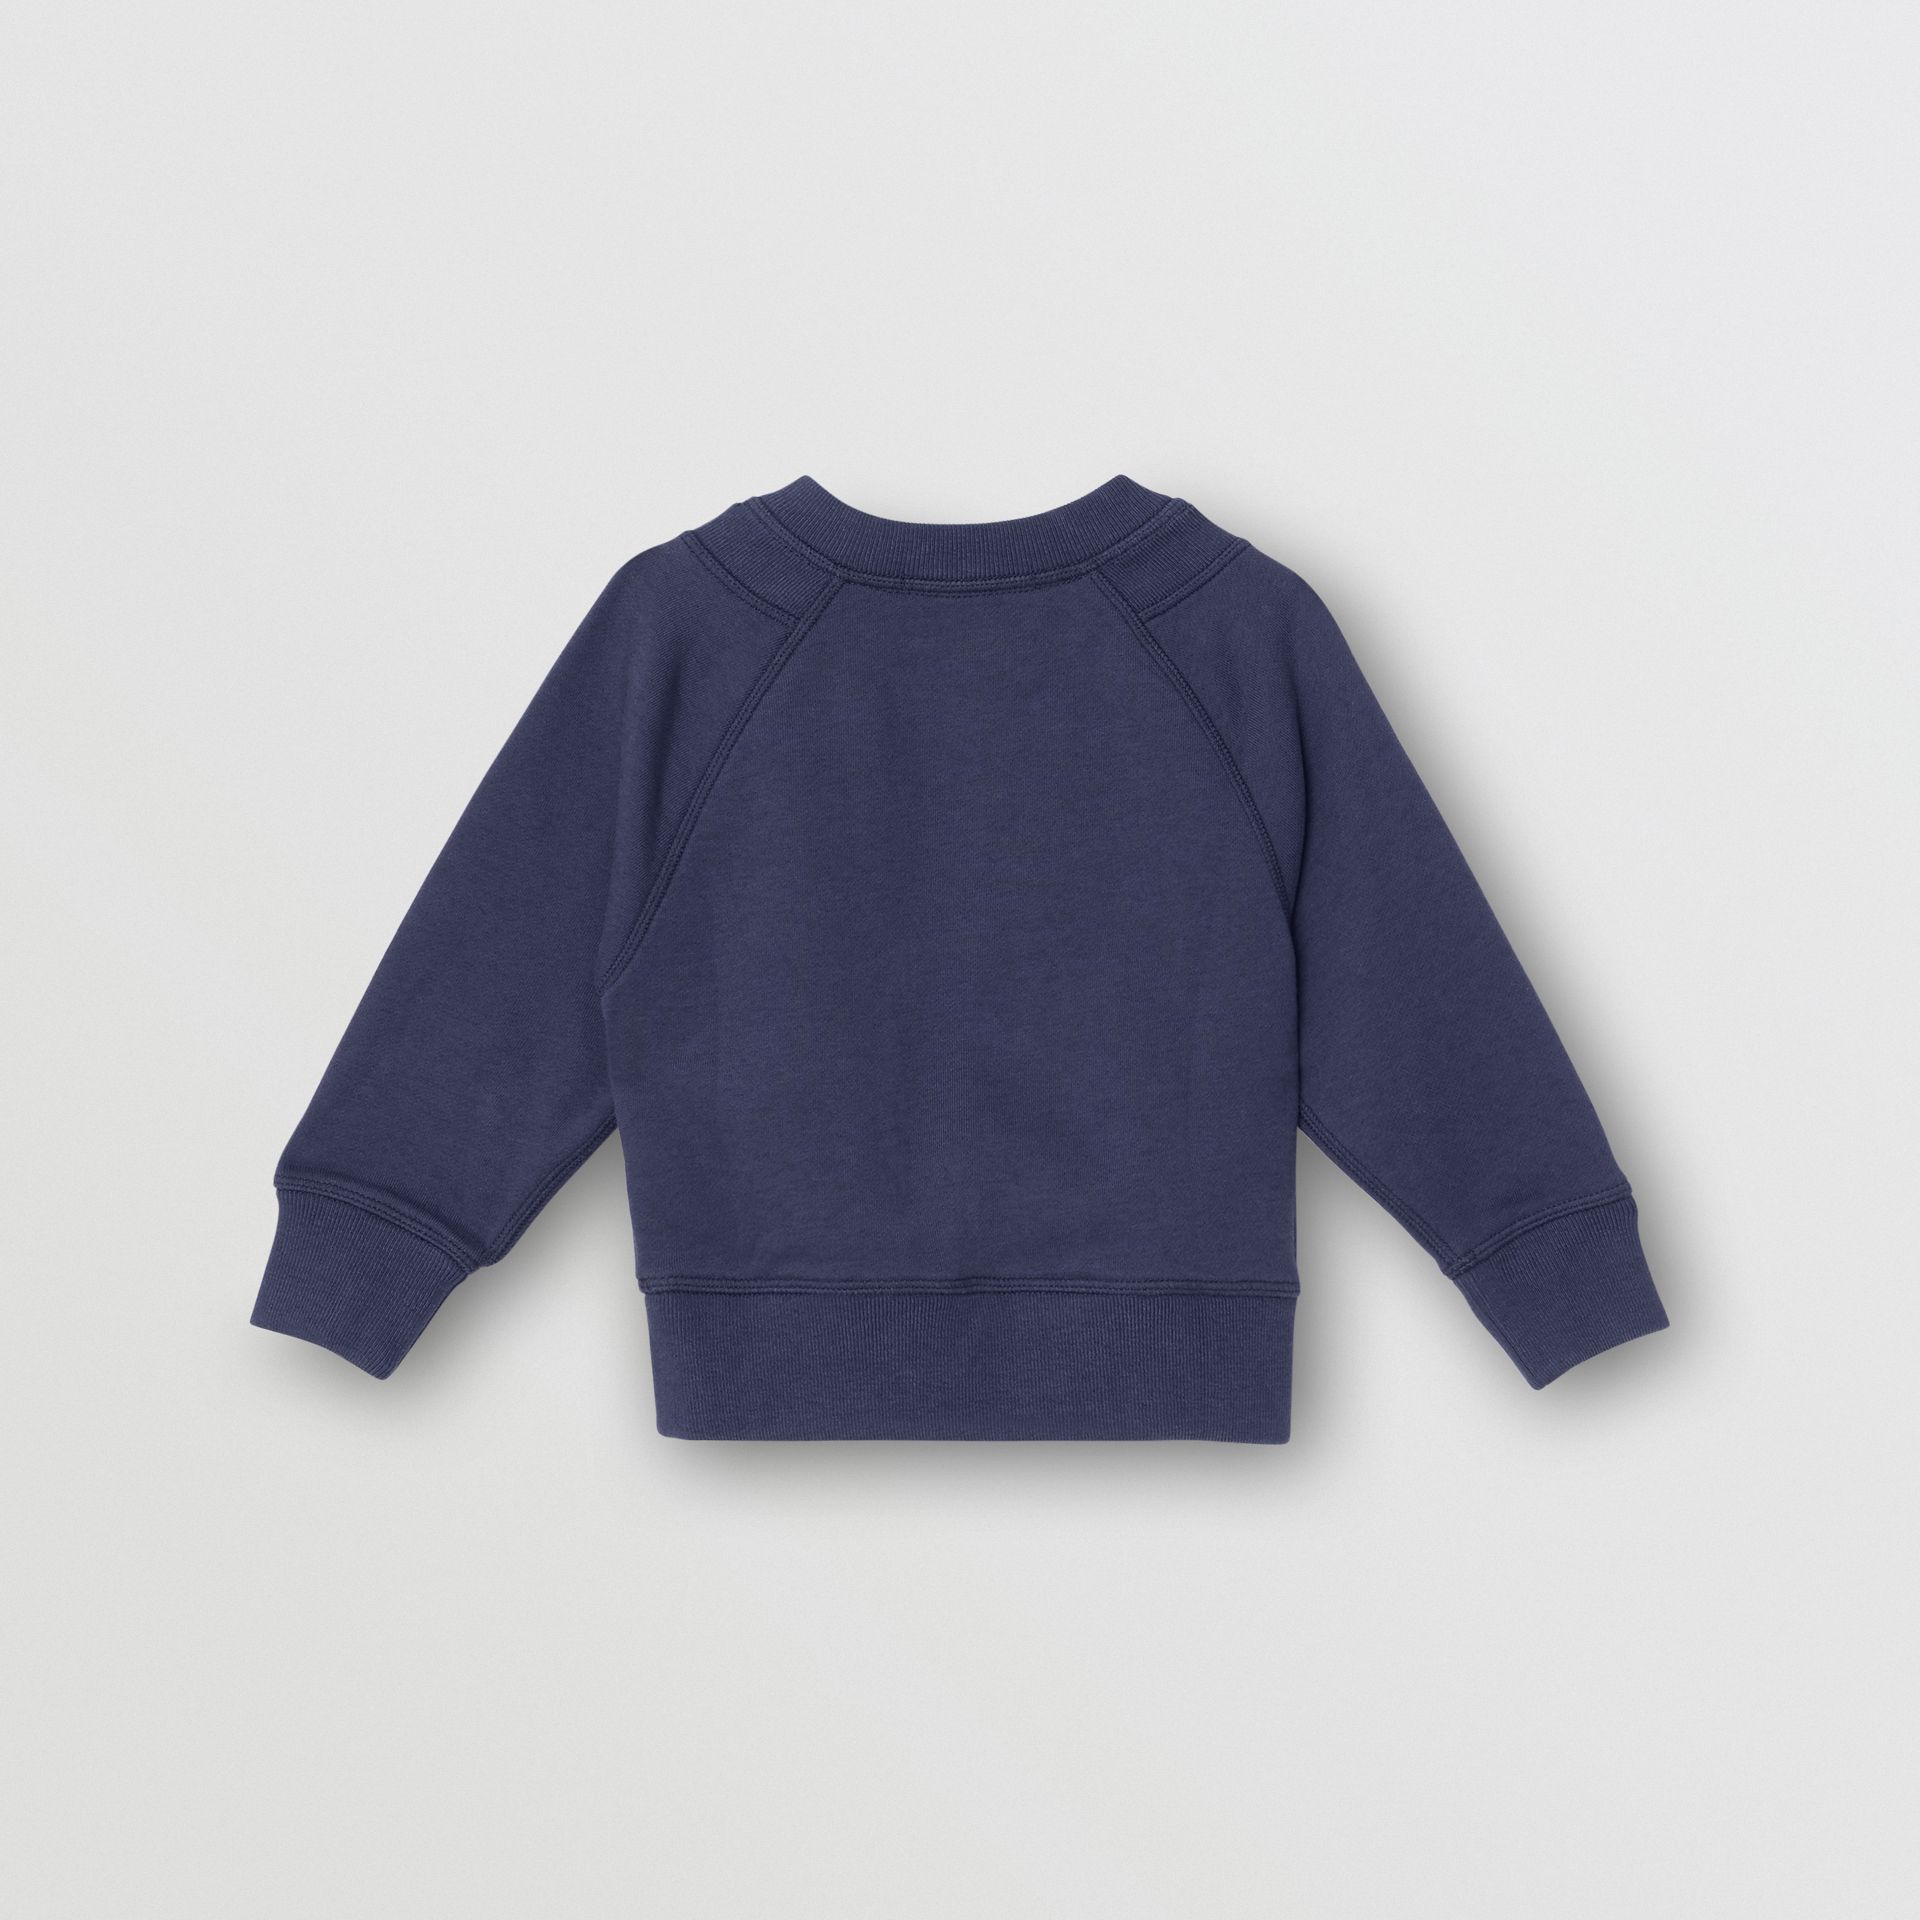 Kingdom Motif Cotton Sweatshirt in Slate Blue Melange - Children | Burberry - gallery image 3